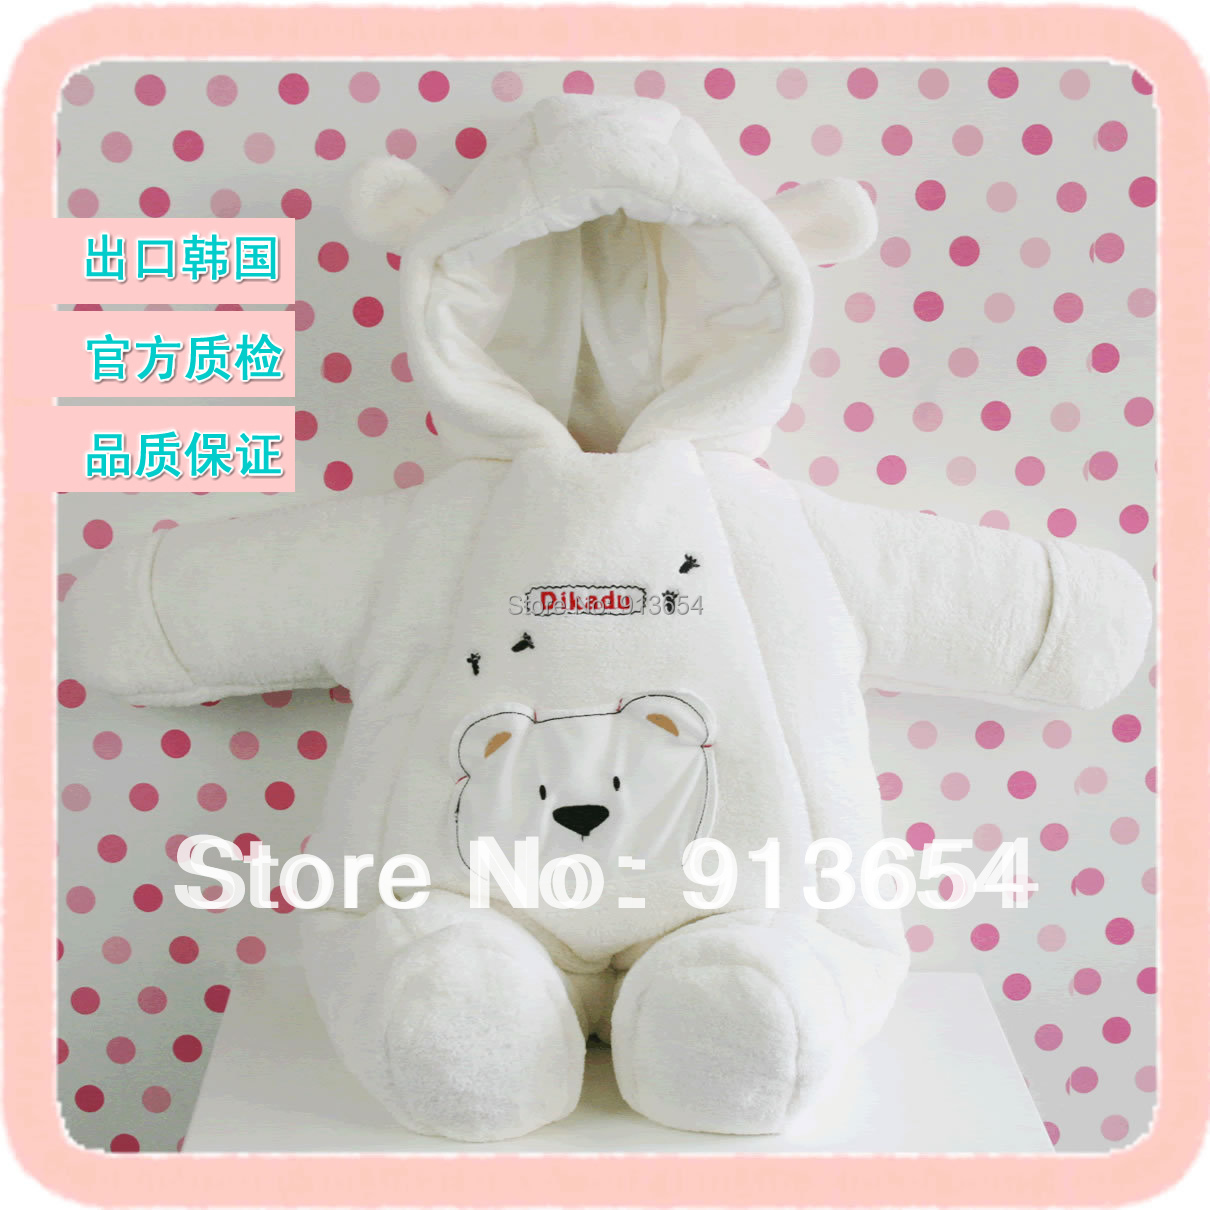 Free shipping new 2016 autumn winter overalls baby clothing newborn cotton romper kids cute warm overall baby jumpsuits free shipping new 2017 spring autumn baby clothing infant set gift baby jumpsuits newborn romper 4pcs set 2pcs romper hat bib